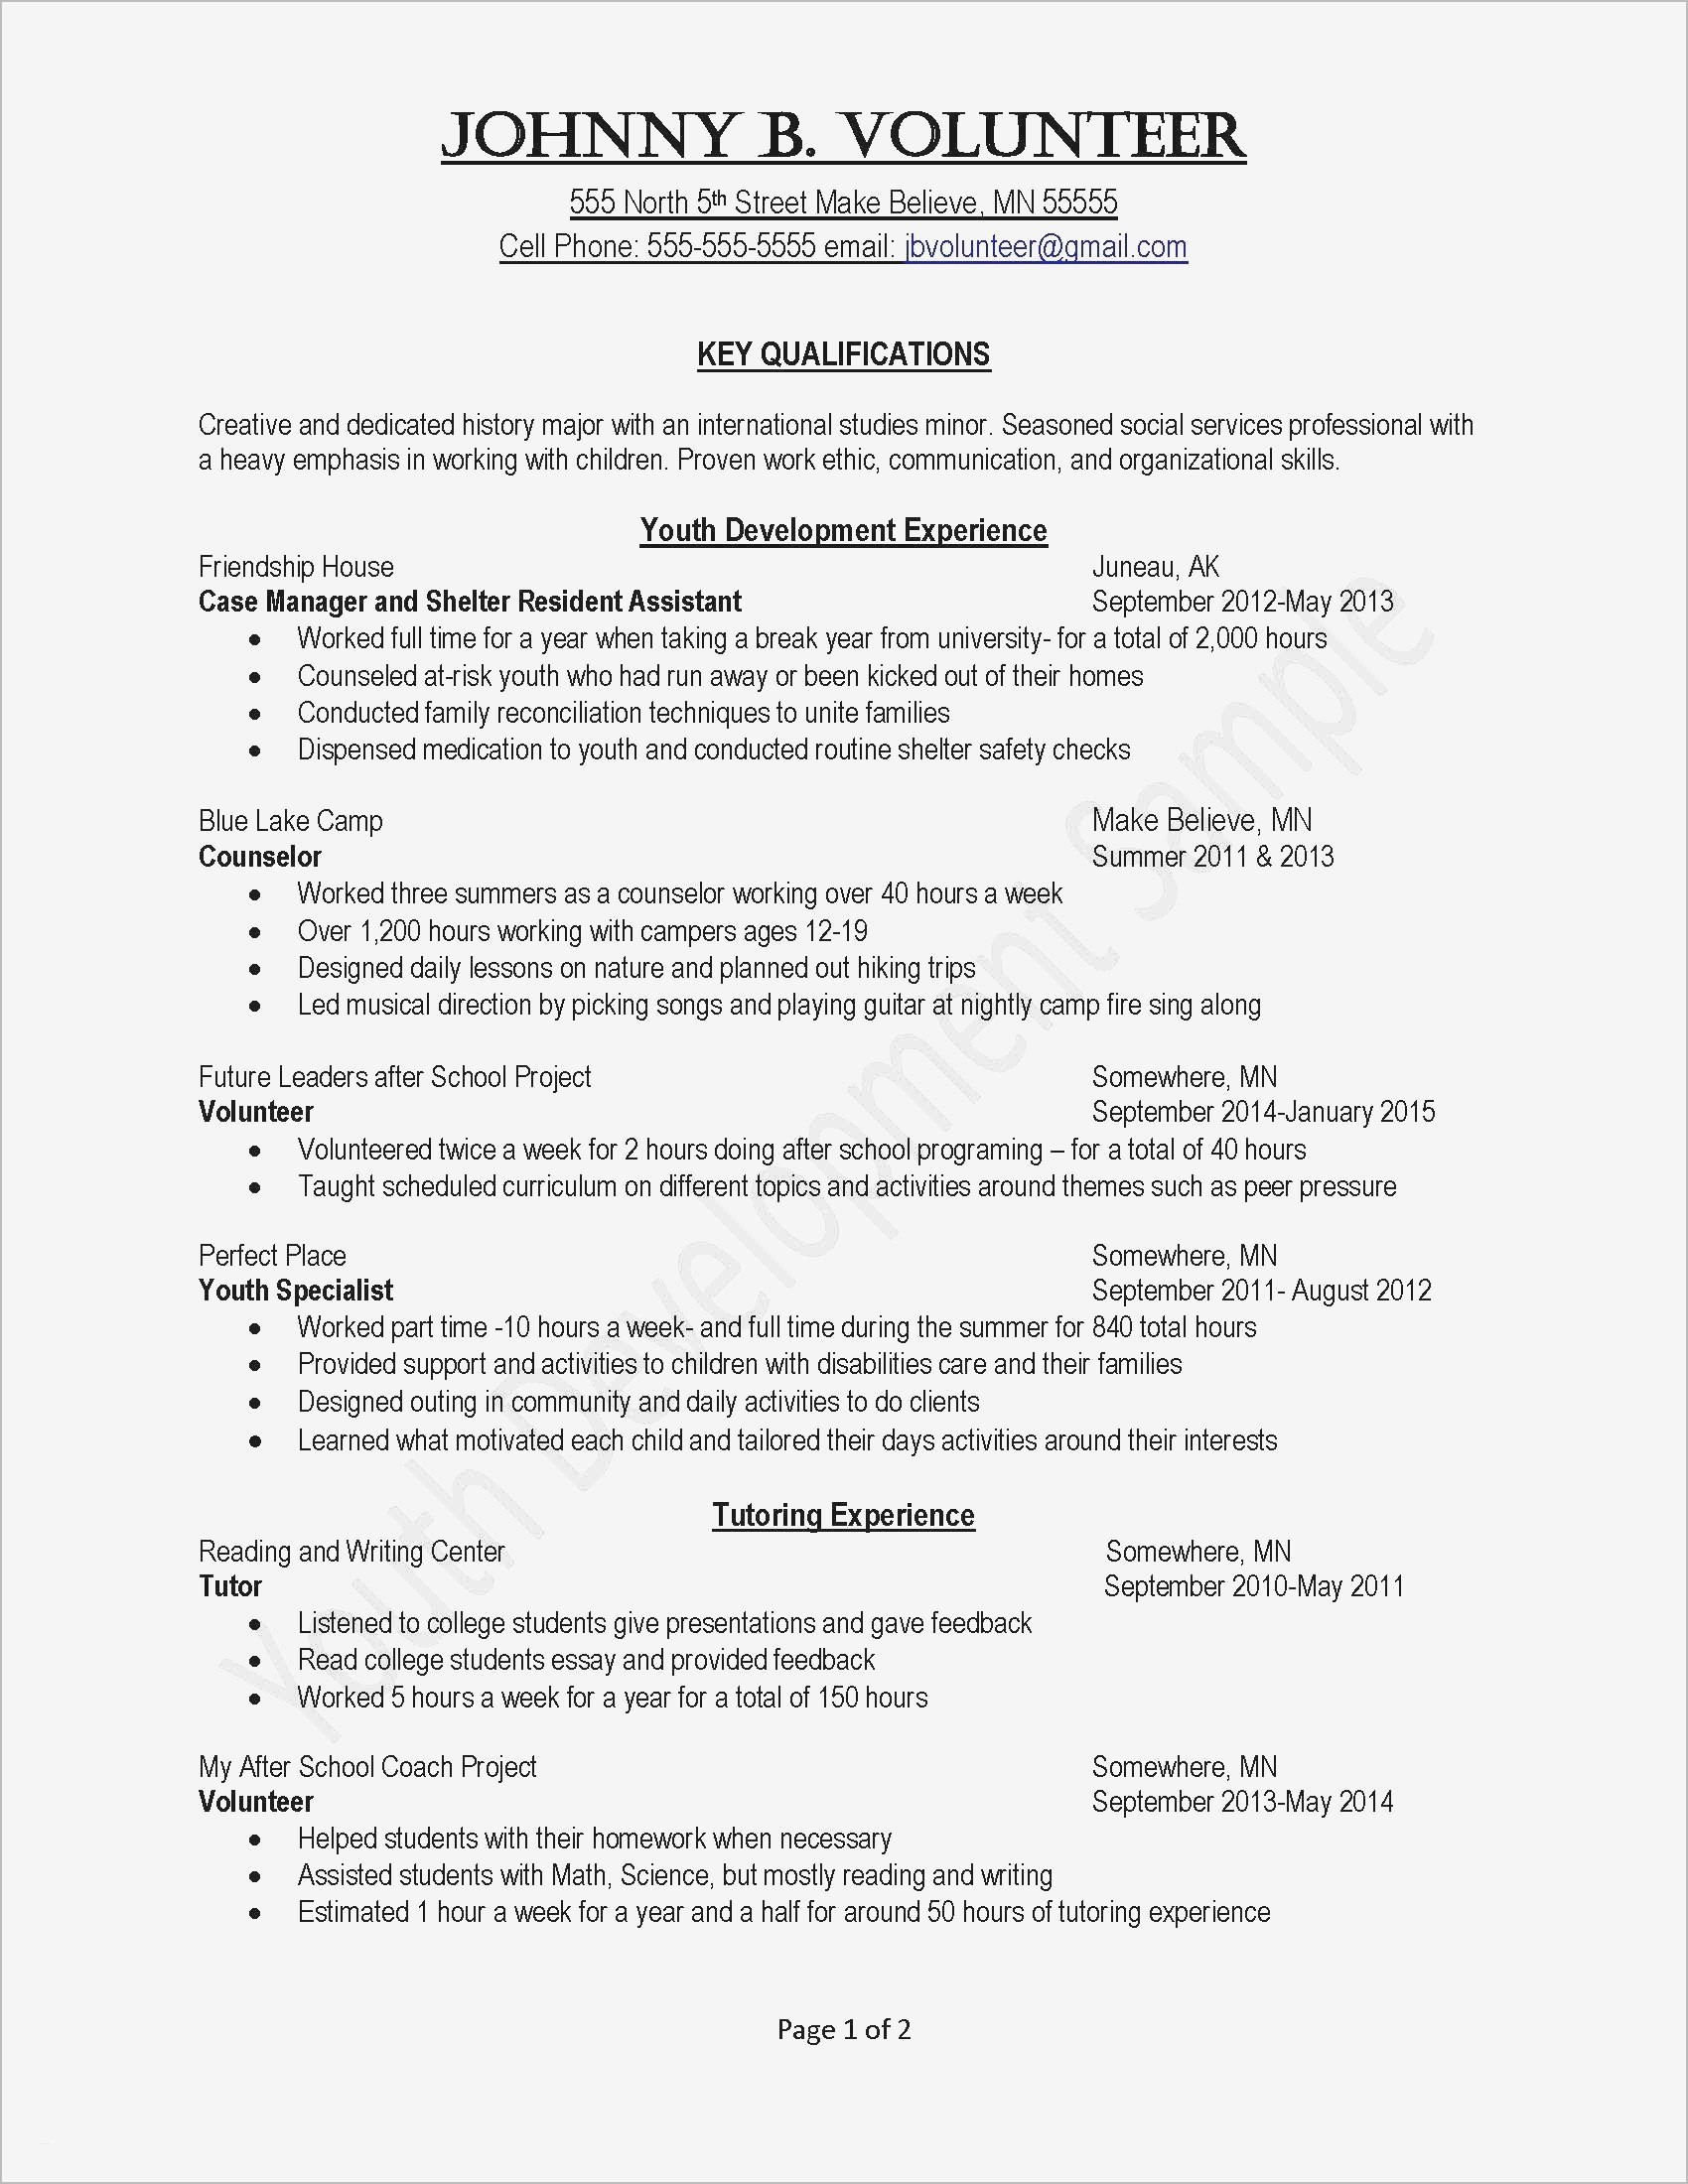 skills usa resume template Collection-Template For Cover Letter And Resume Fresh Activities Resume Template Valid Job Fer Letter Template Us Copy Od 7-p